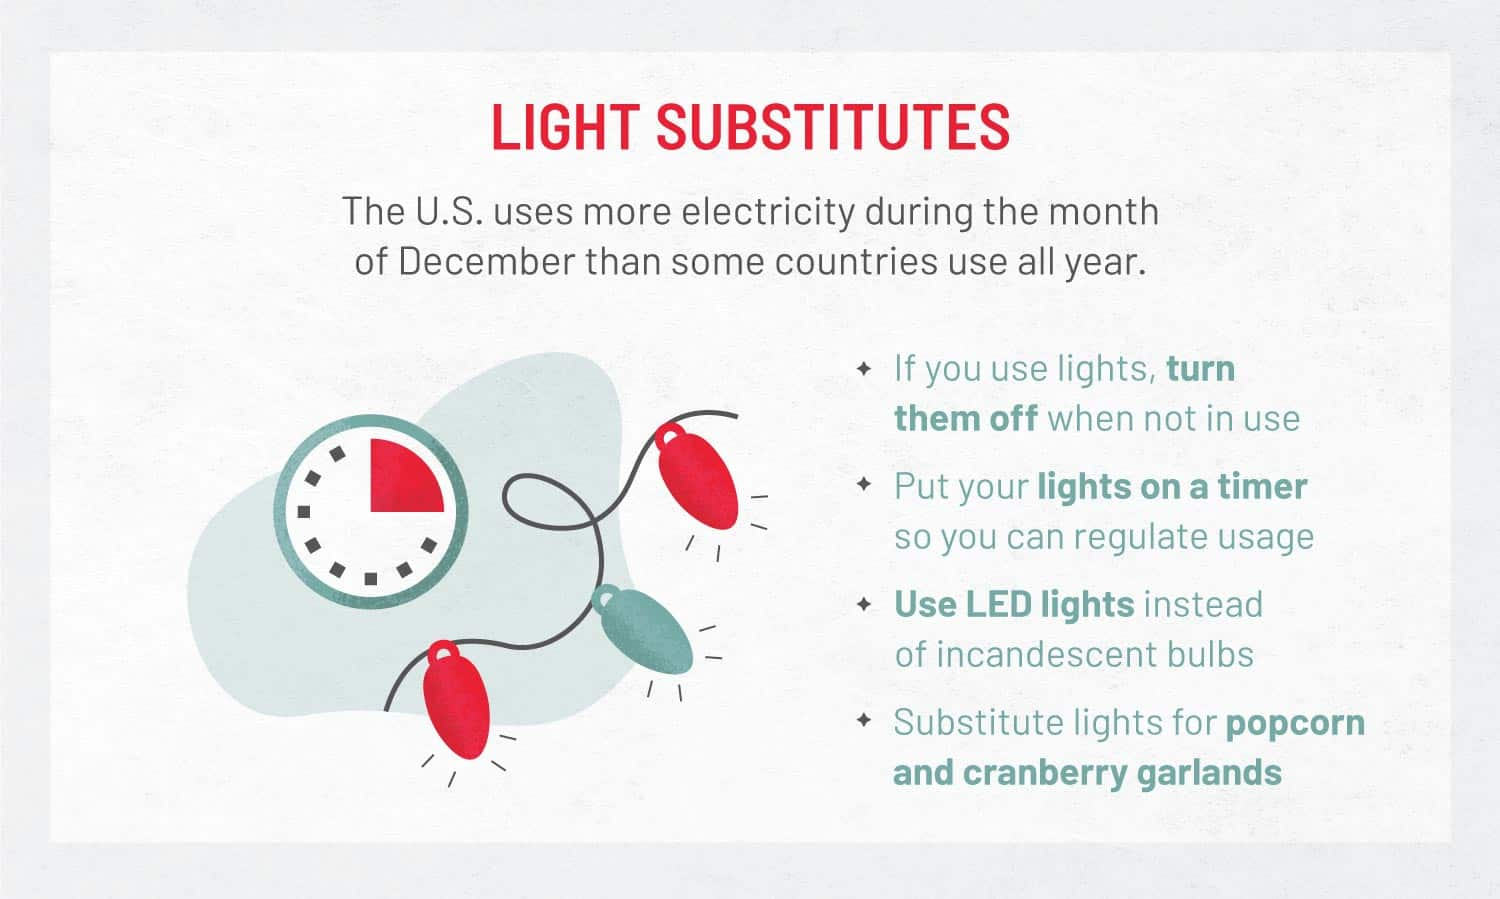 graphic that shows light substitutes